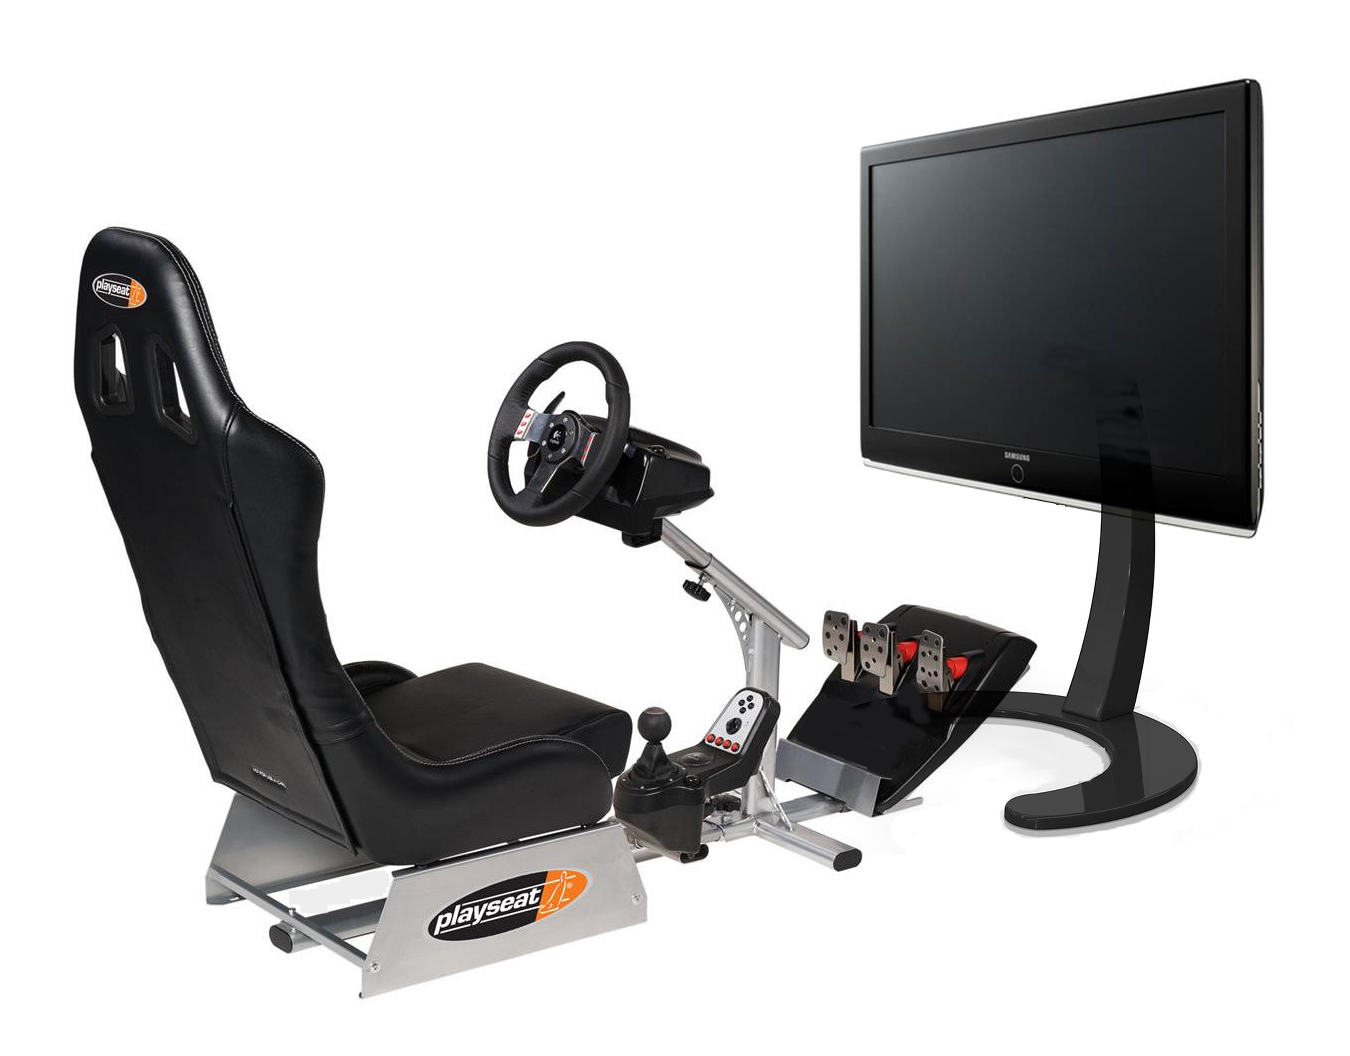 G25 - Playseat